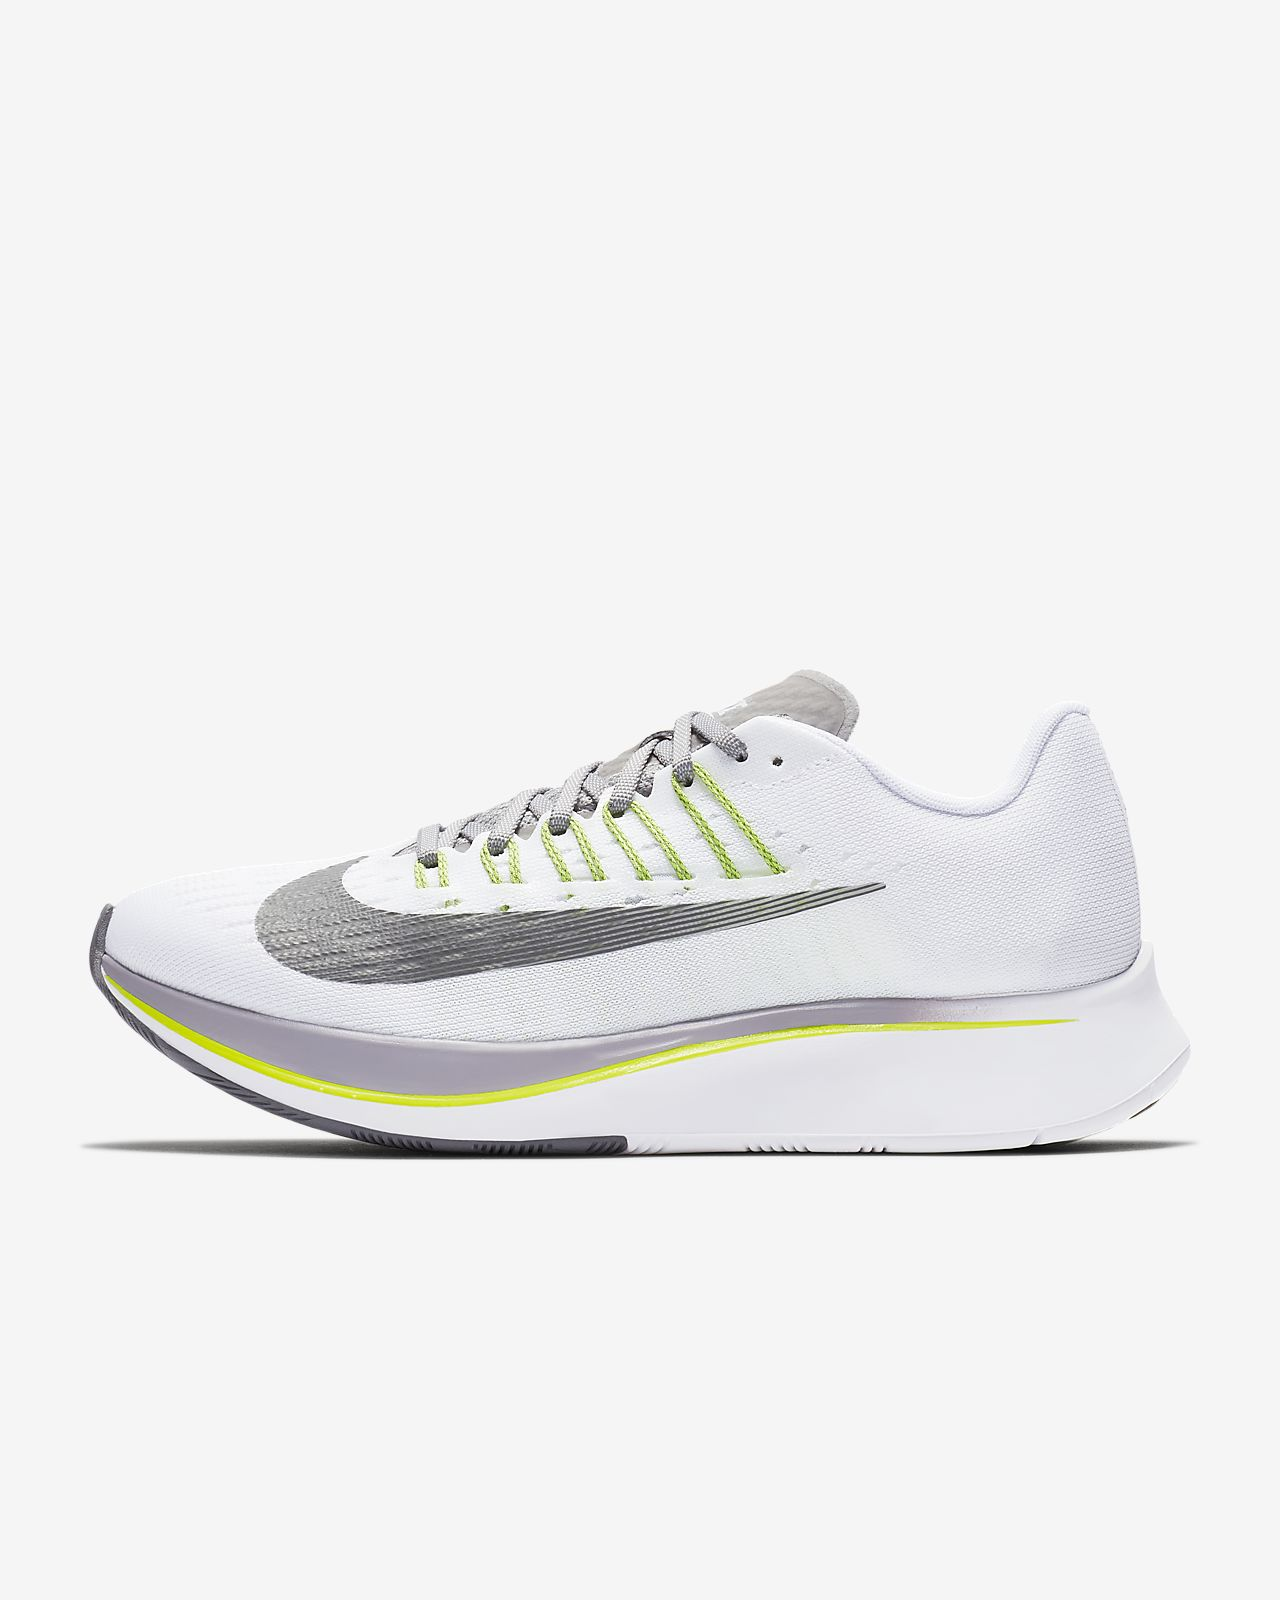 Nike Zoom Fly Womens Running Shoe